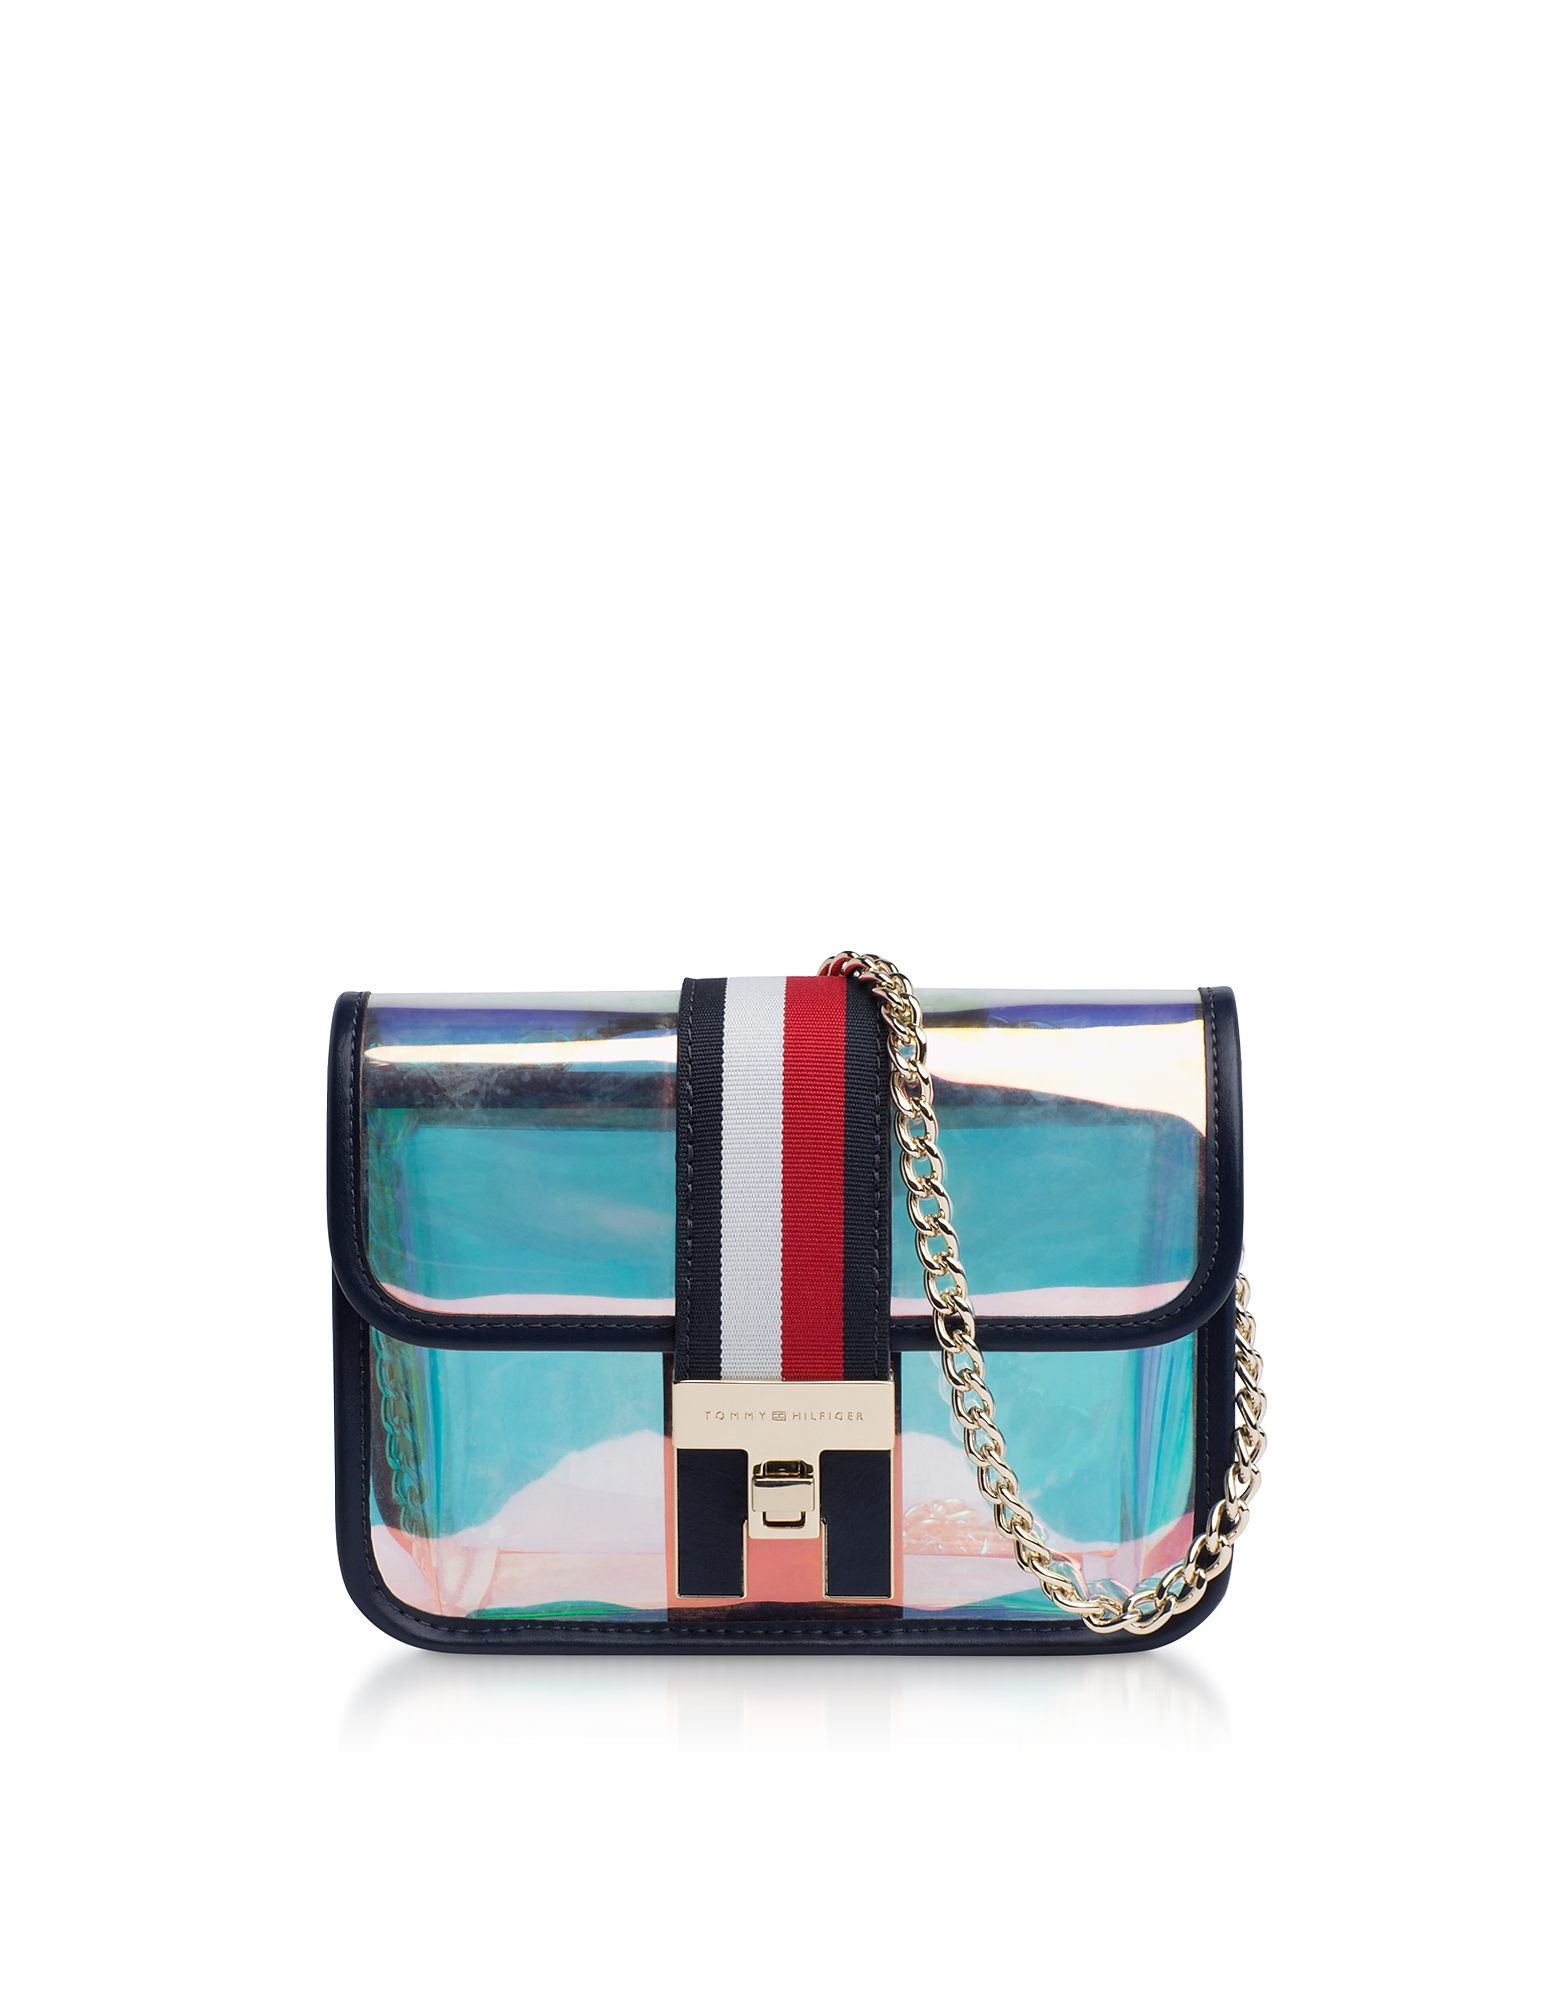 Iridescent The Heritage Mini Crossover Bag